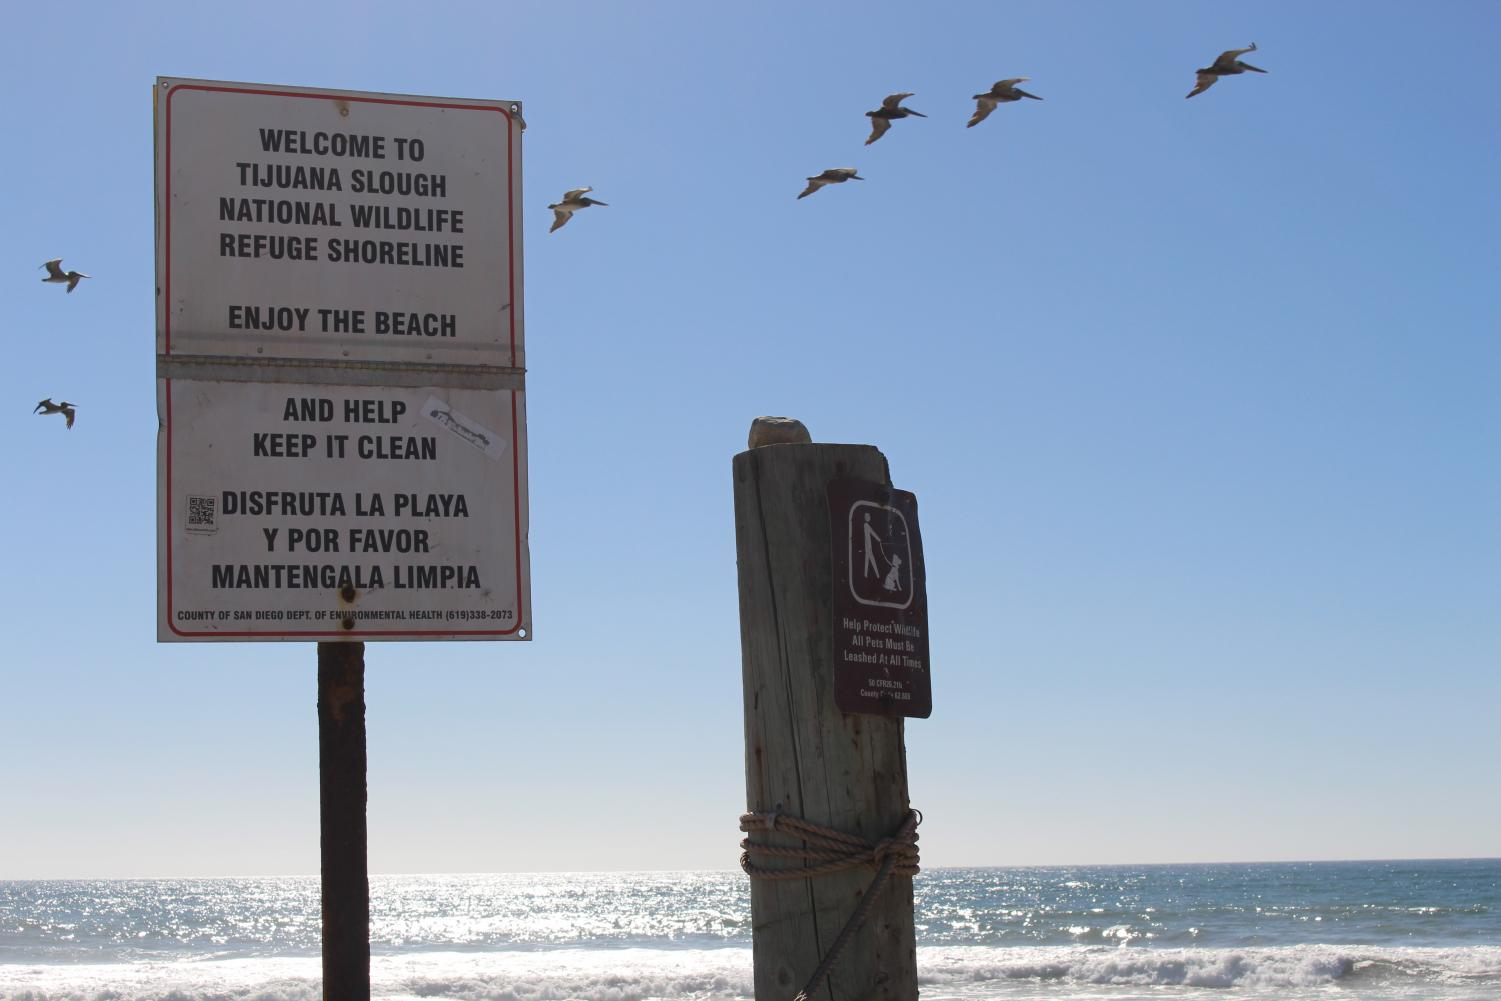 Signs encourage beachgoers to ironically keep the beaches clean and to protect the wildlife it holds. There was no sight of anyone on the beach for a good distance.